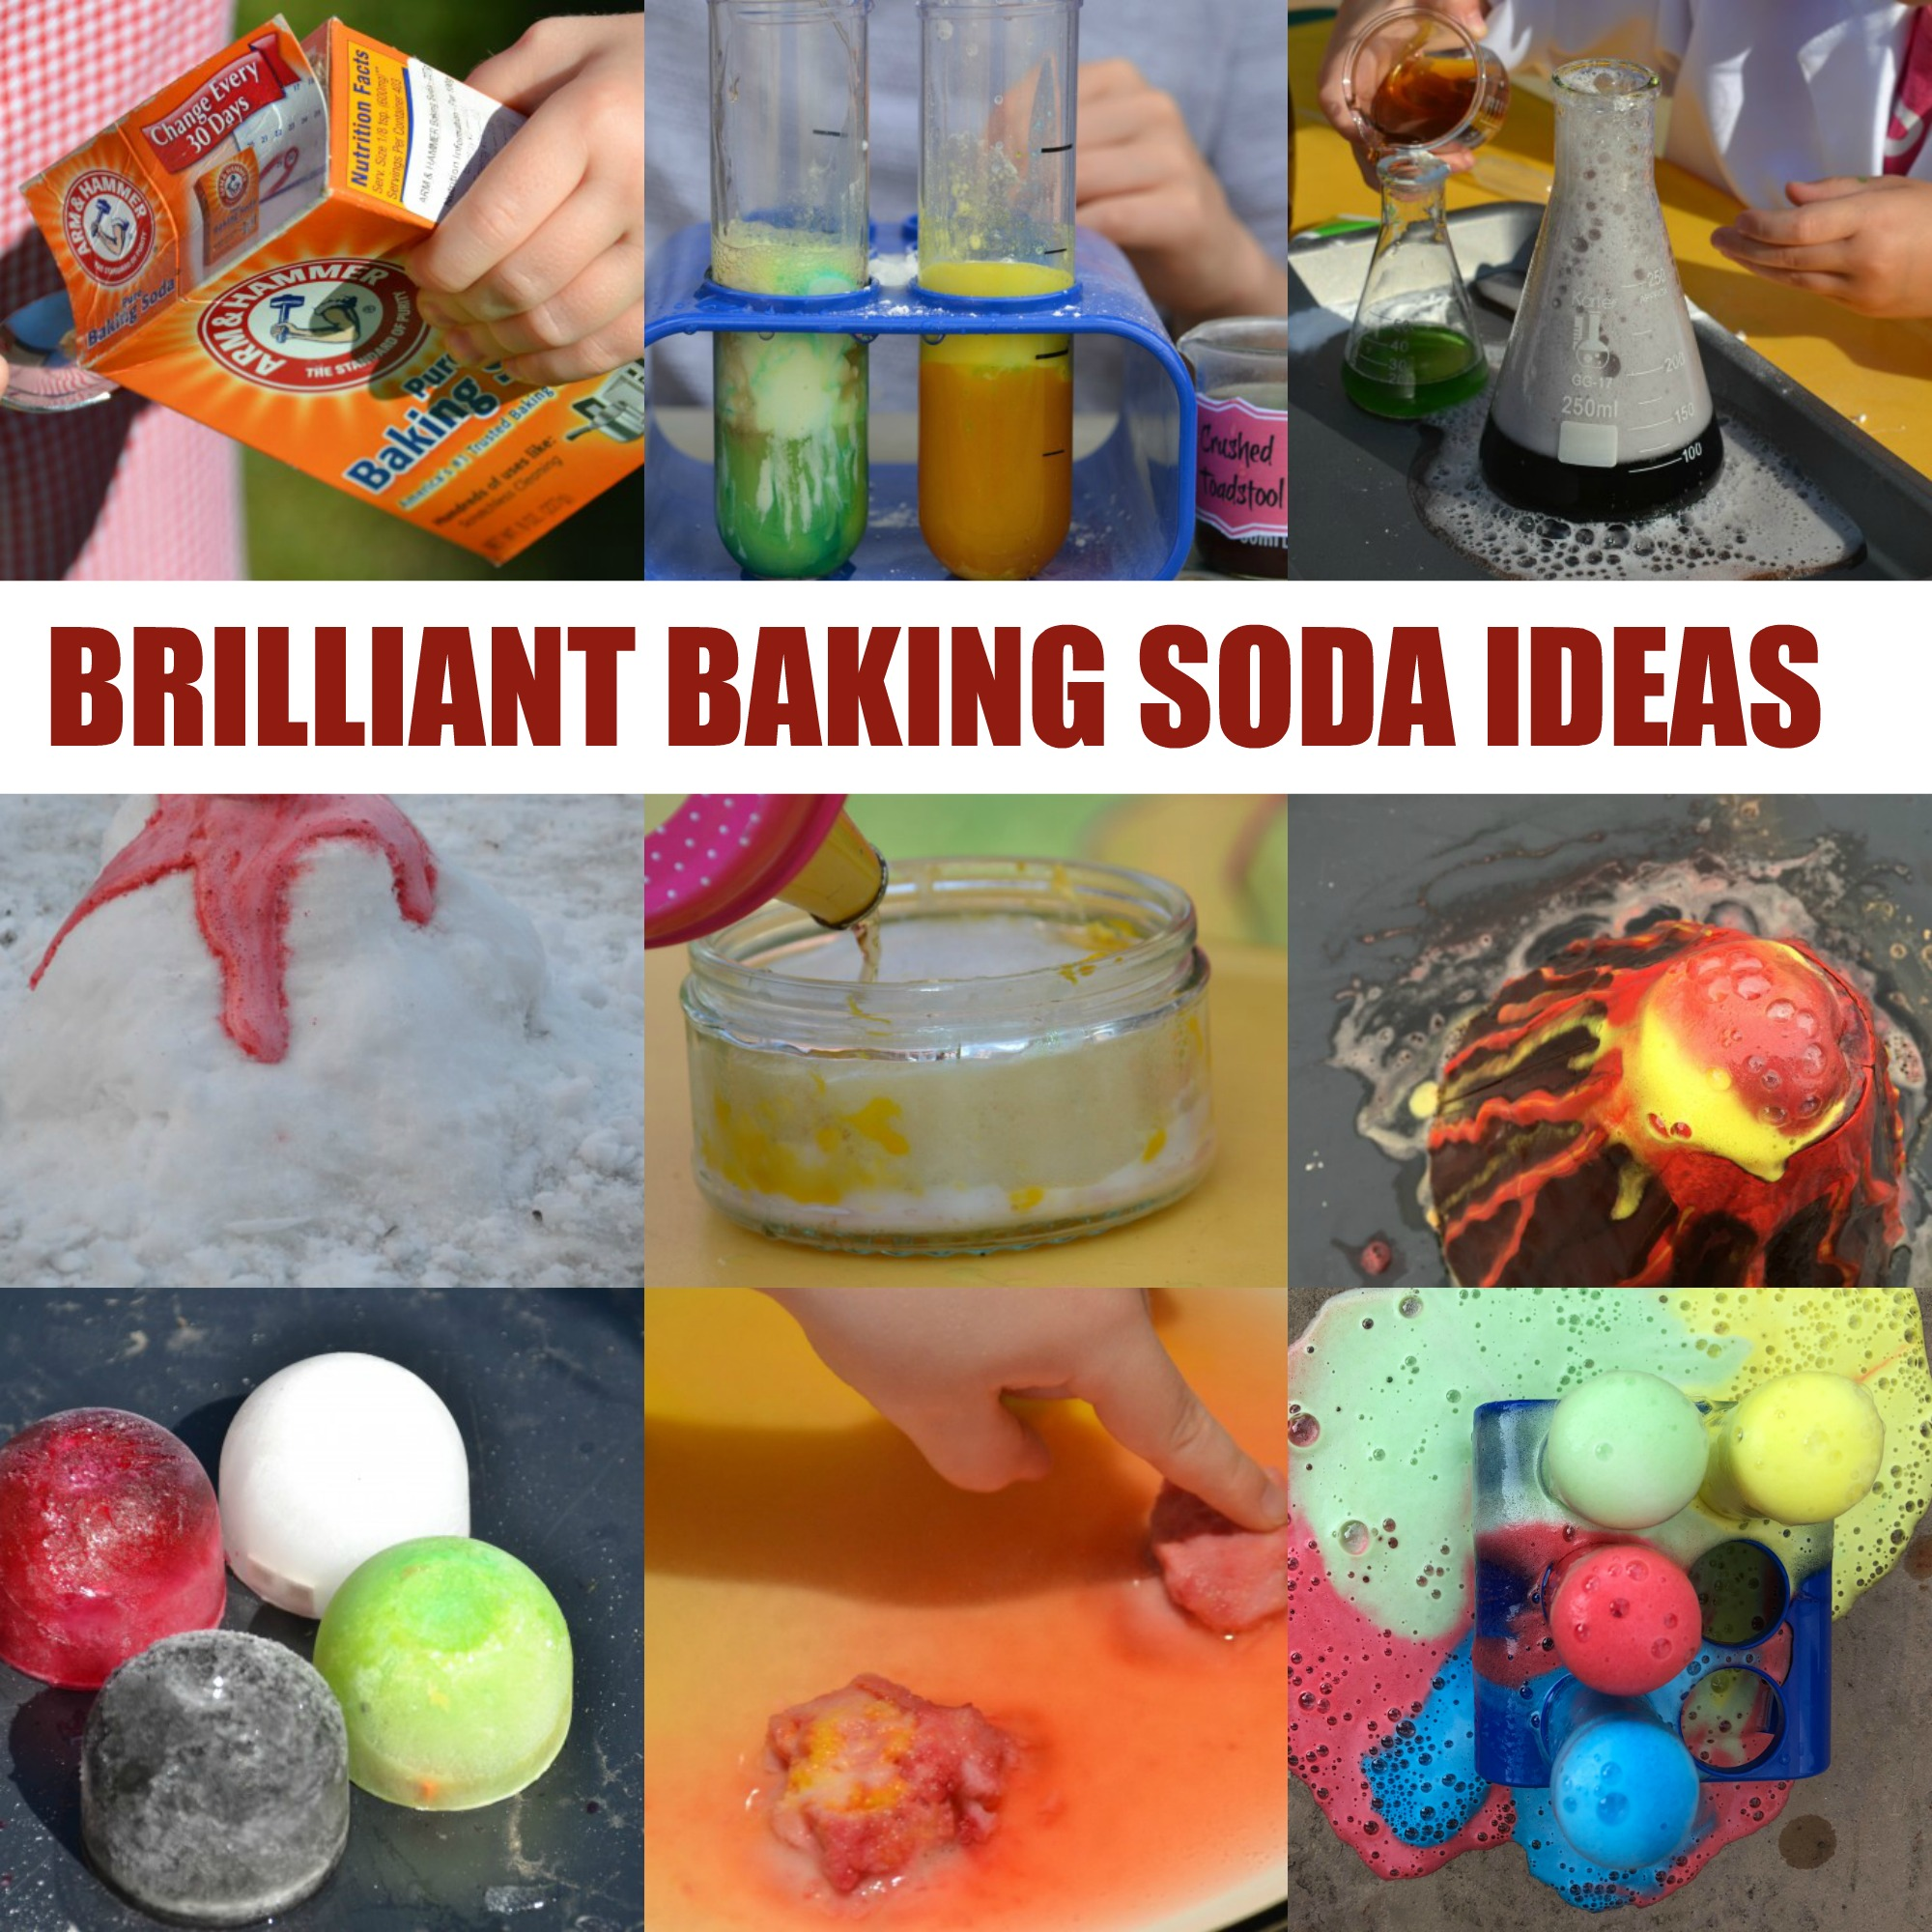 Amazing Baking Soda Experiments - Science Sparks